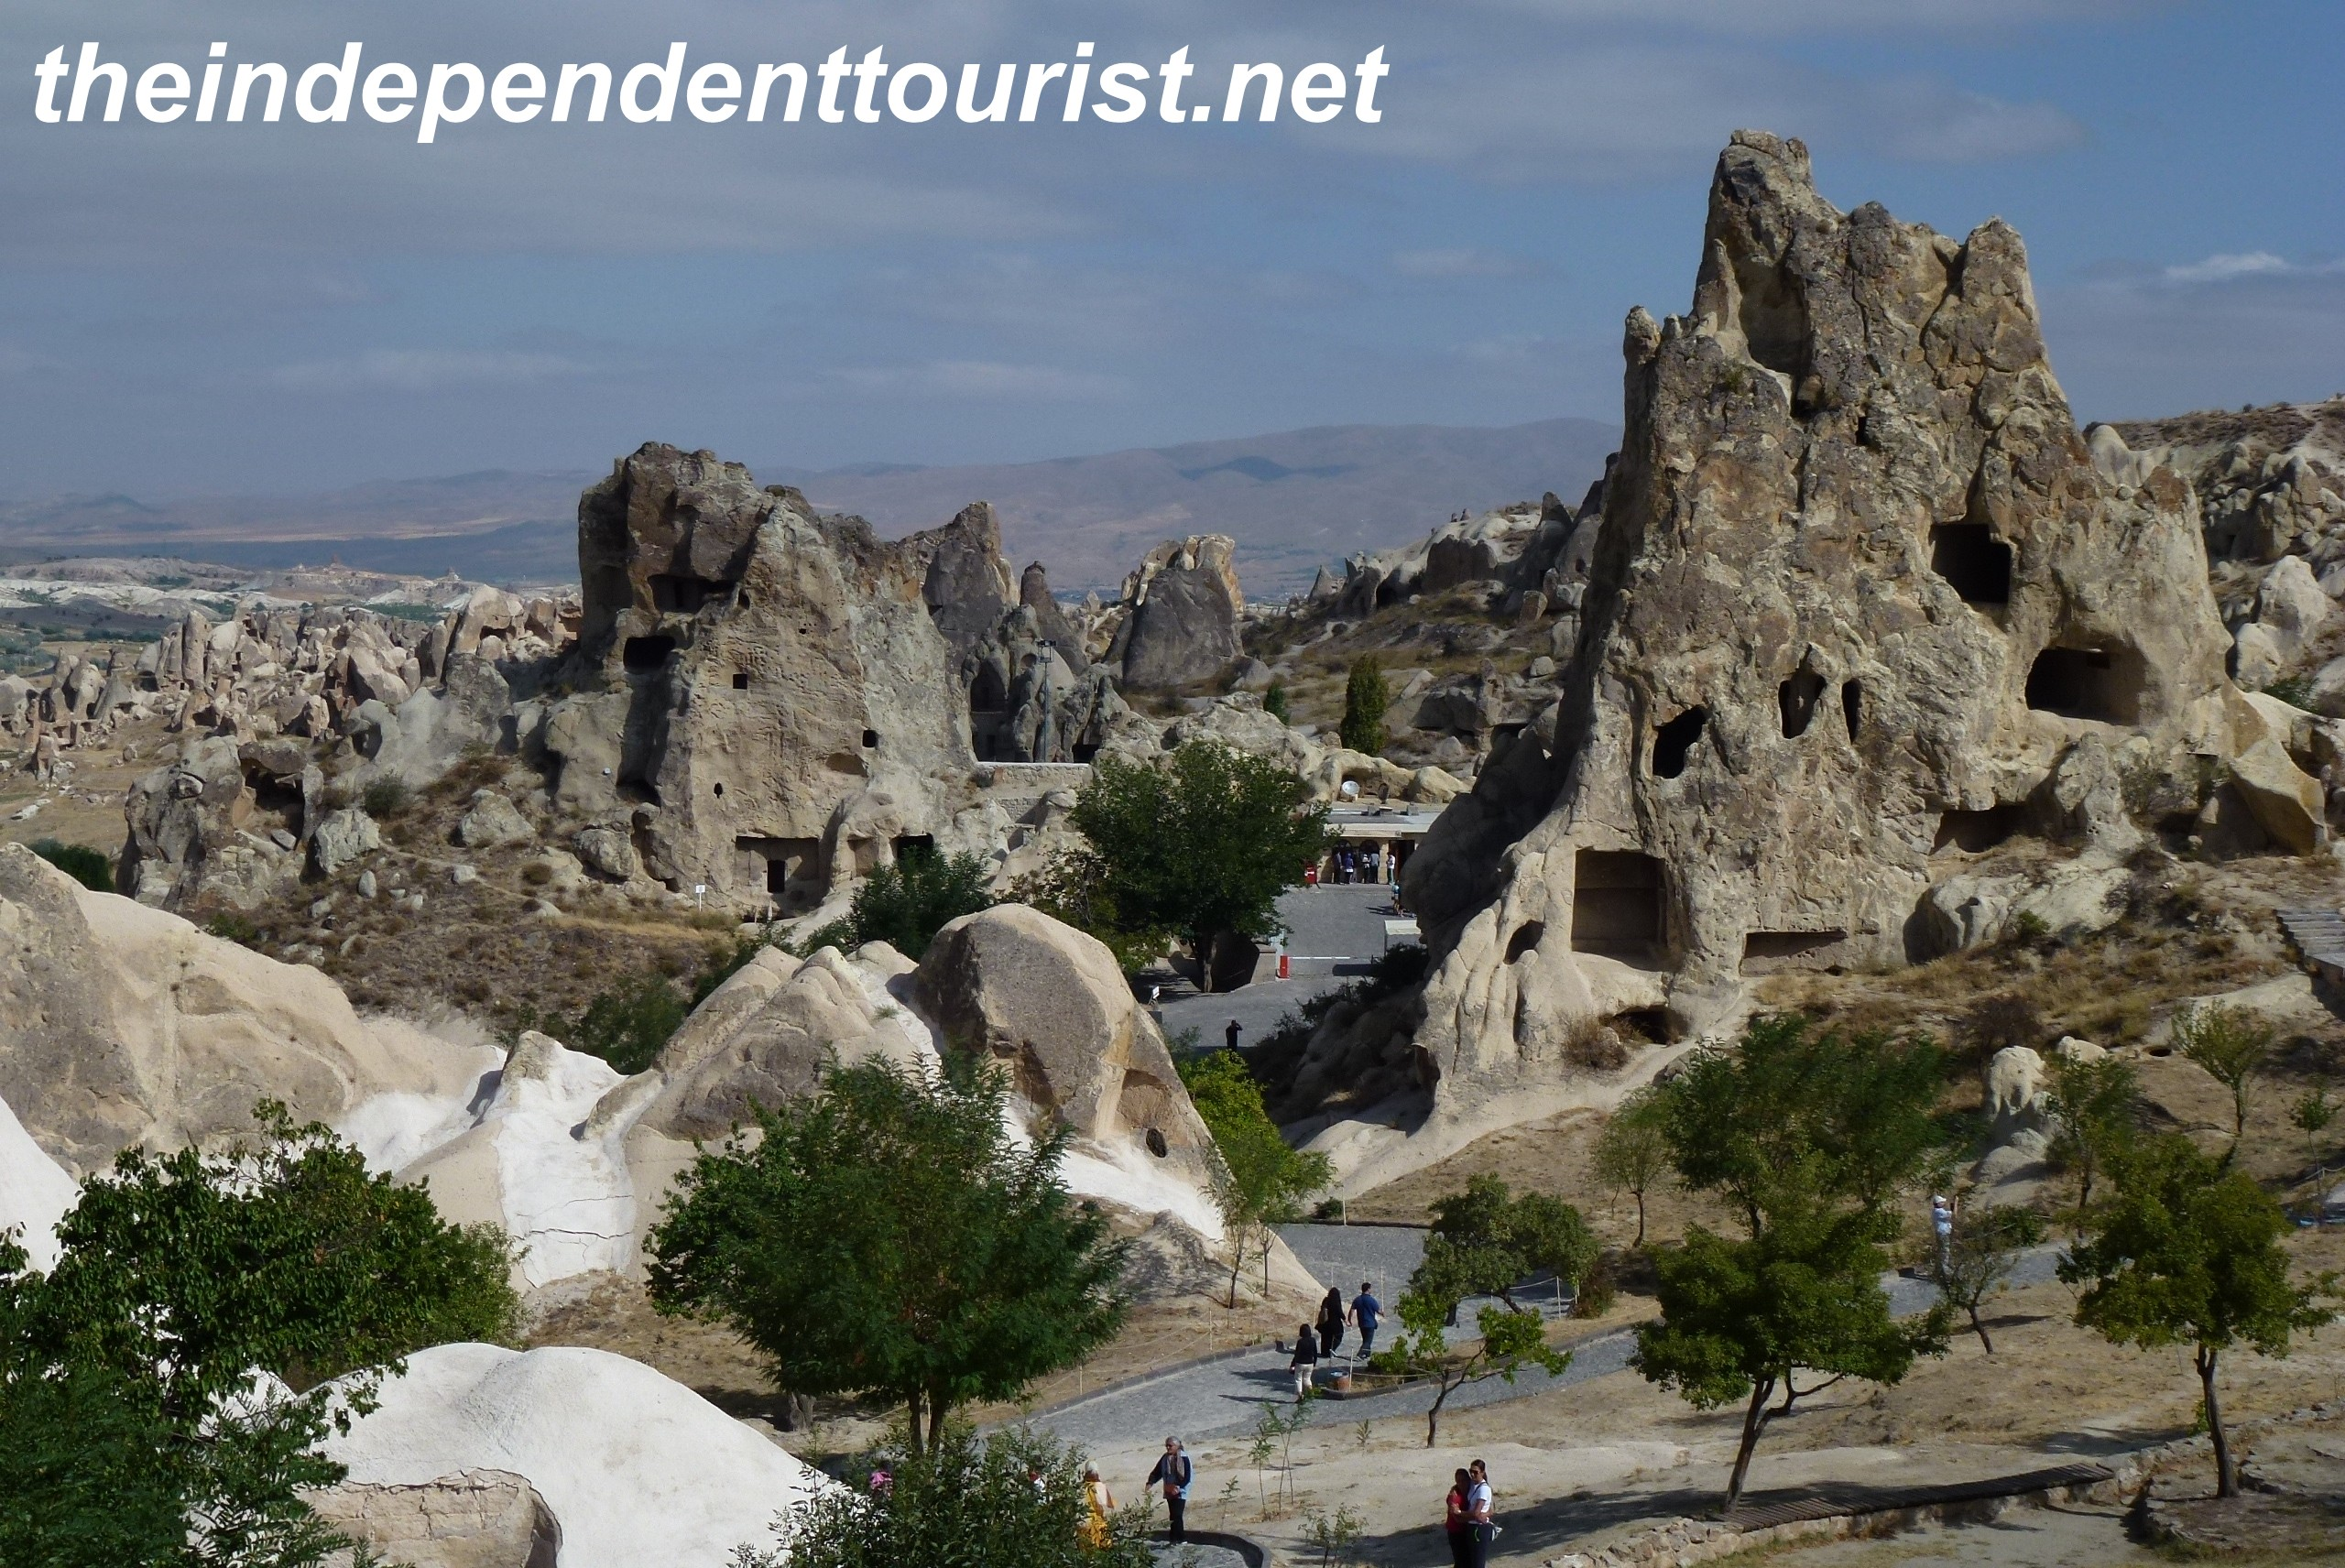 Göreme Open Air Museum in Cappadocia  The Independent Tourist